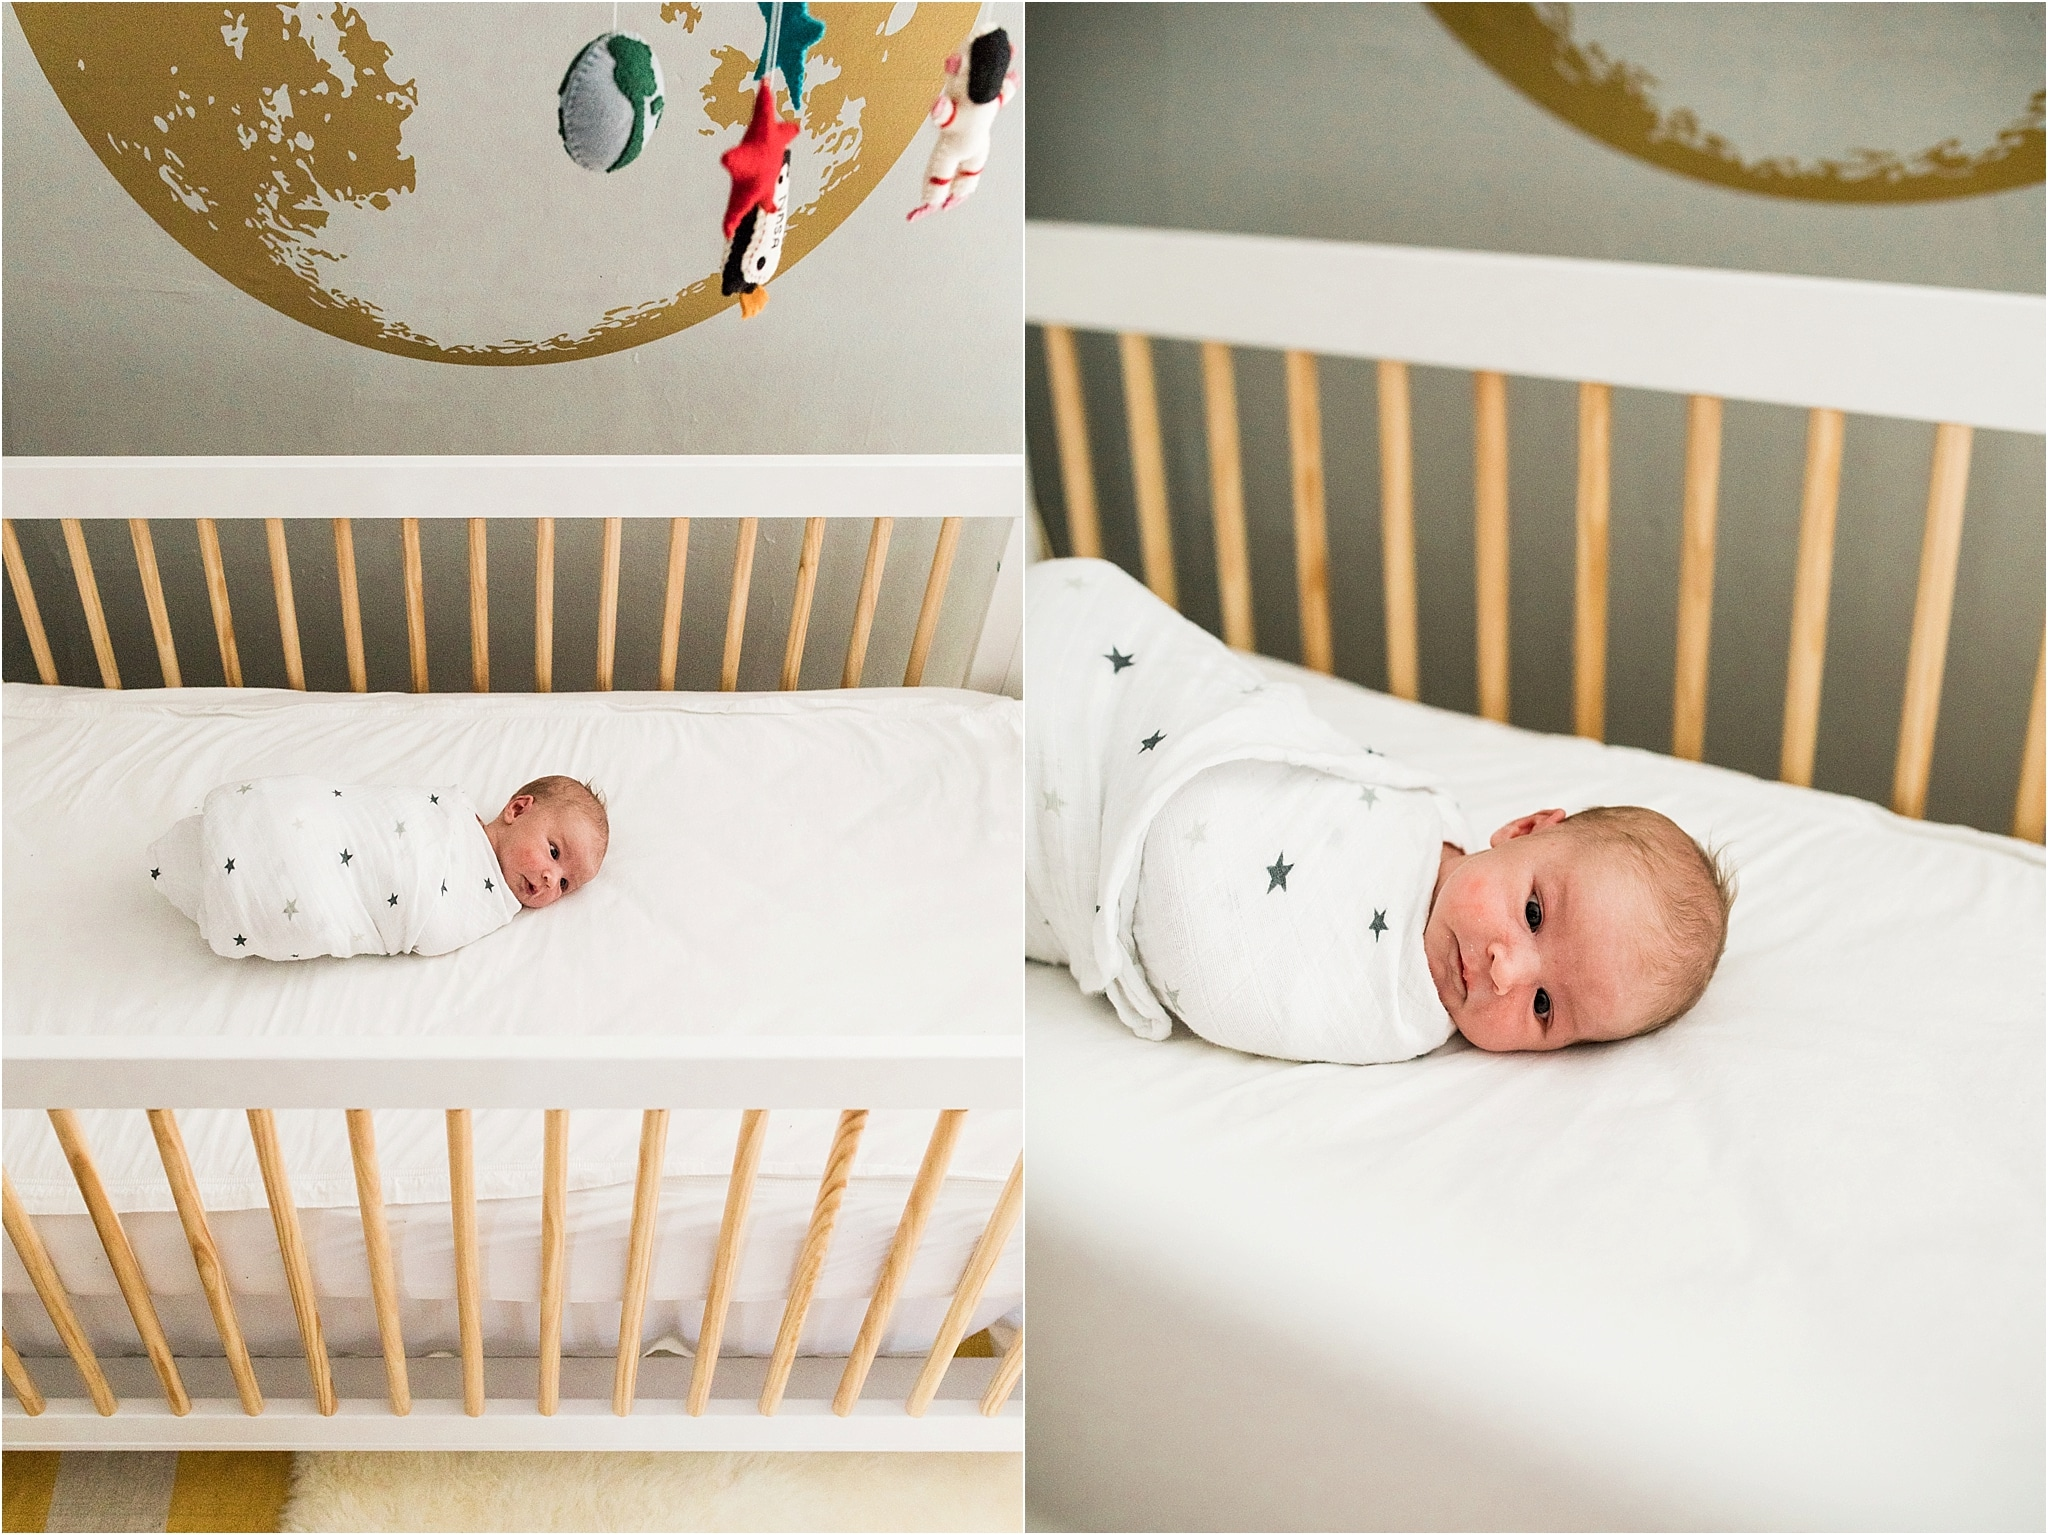 photos of newborn in crib with moon wall decal